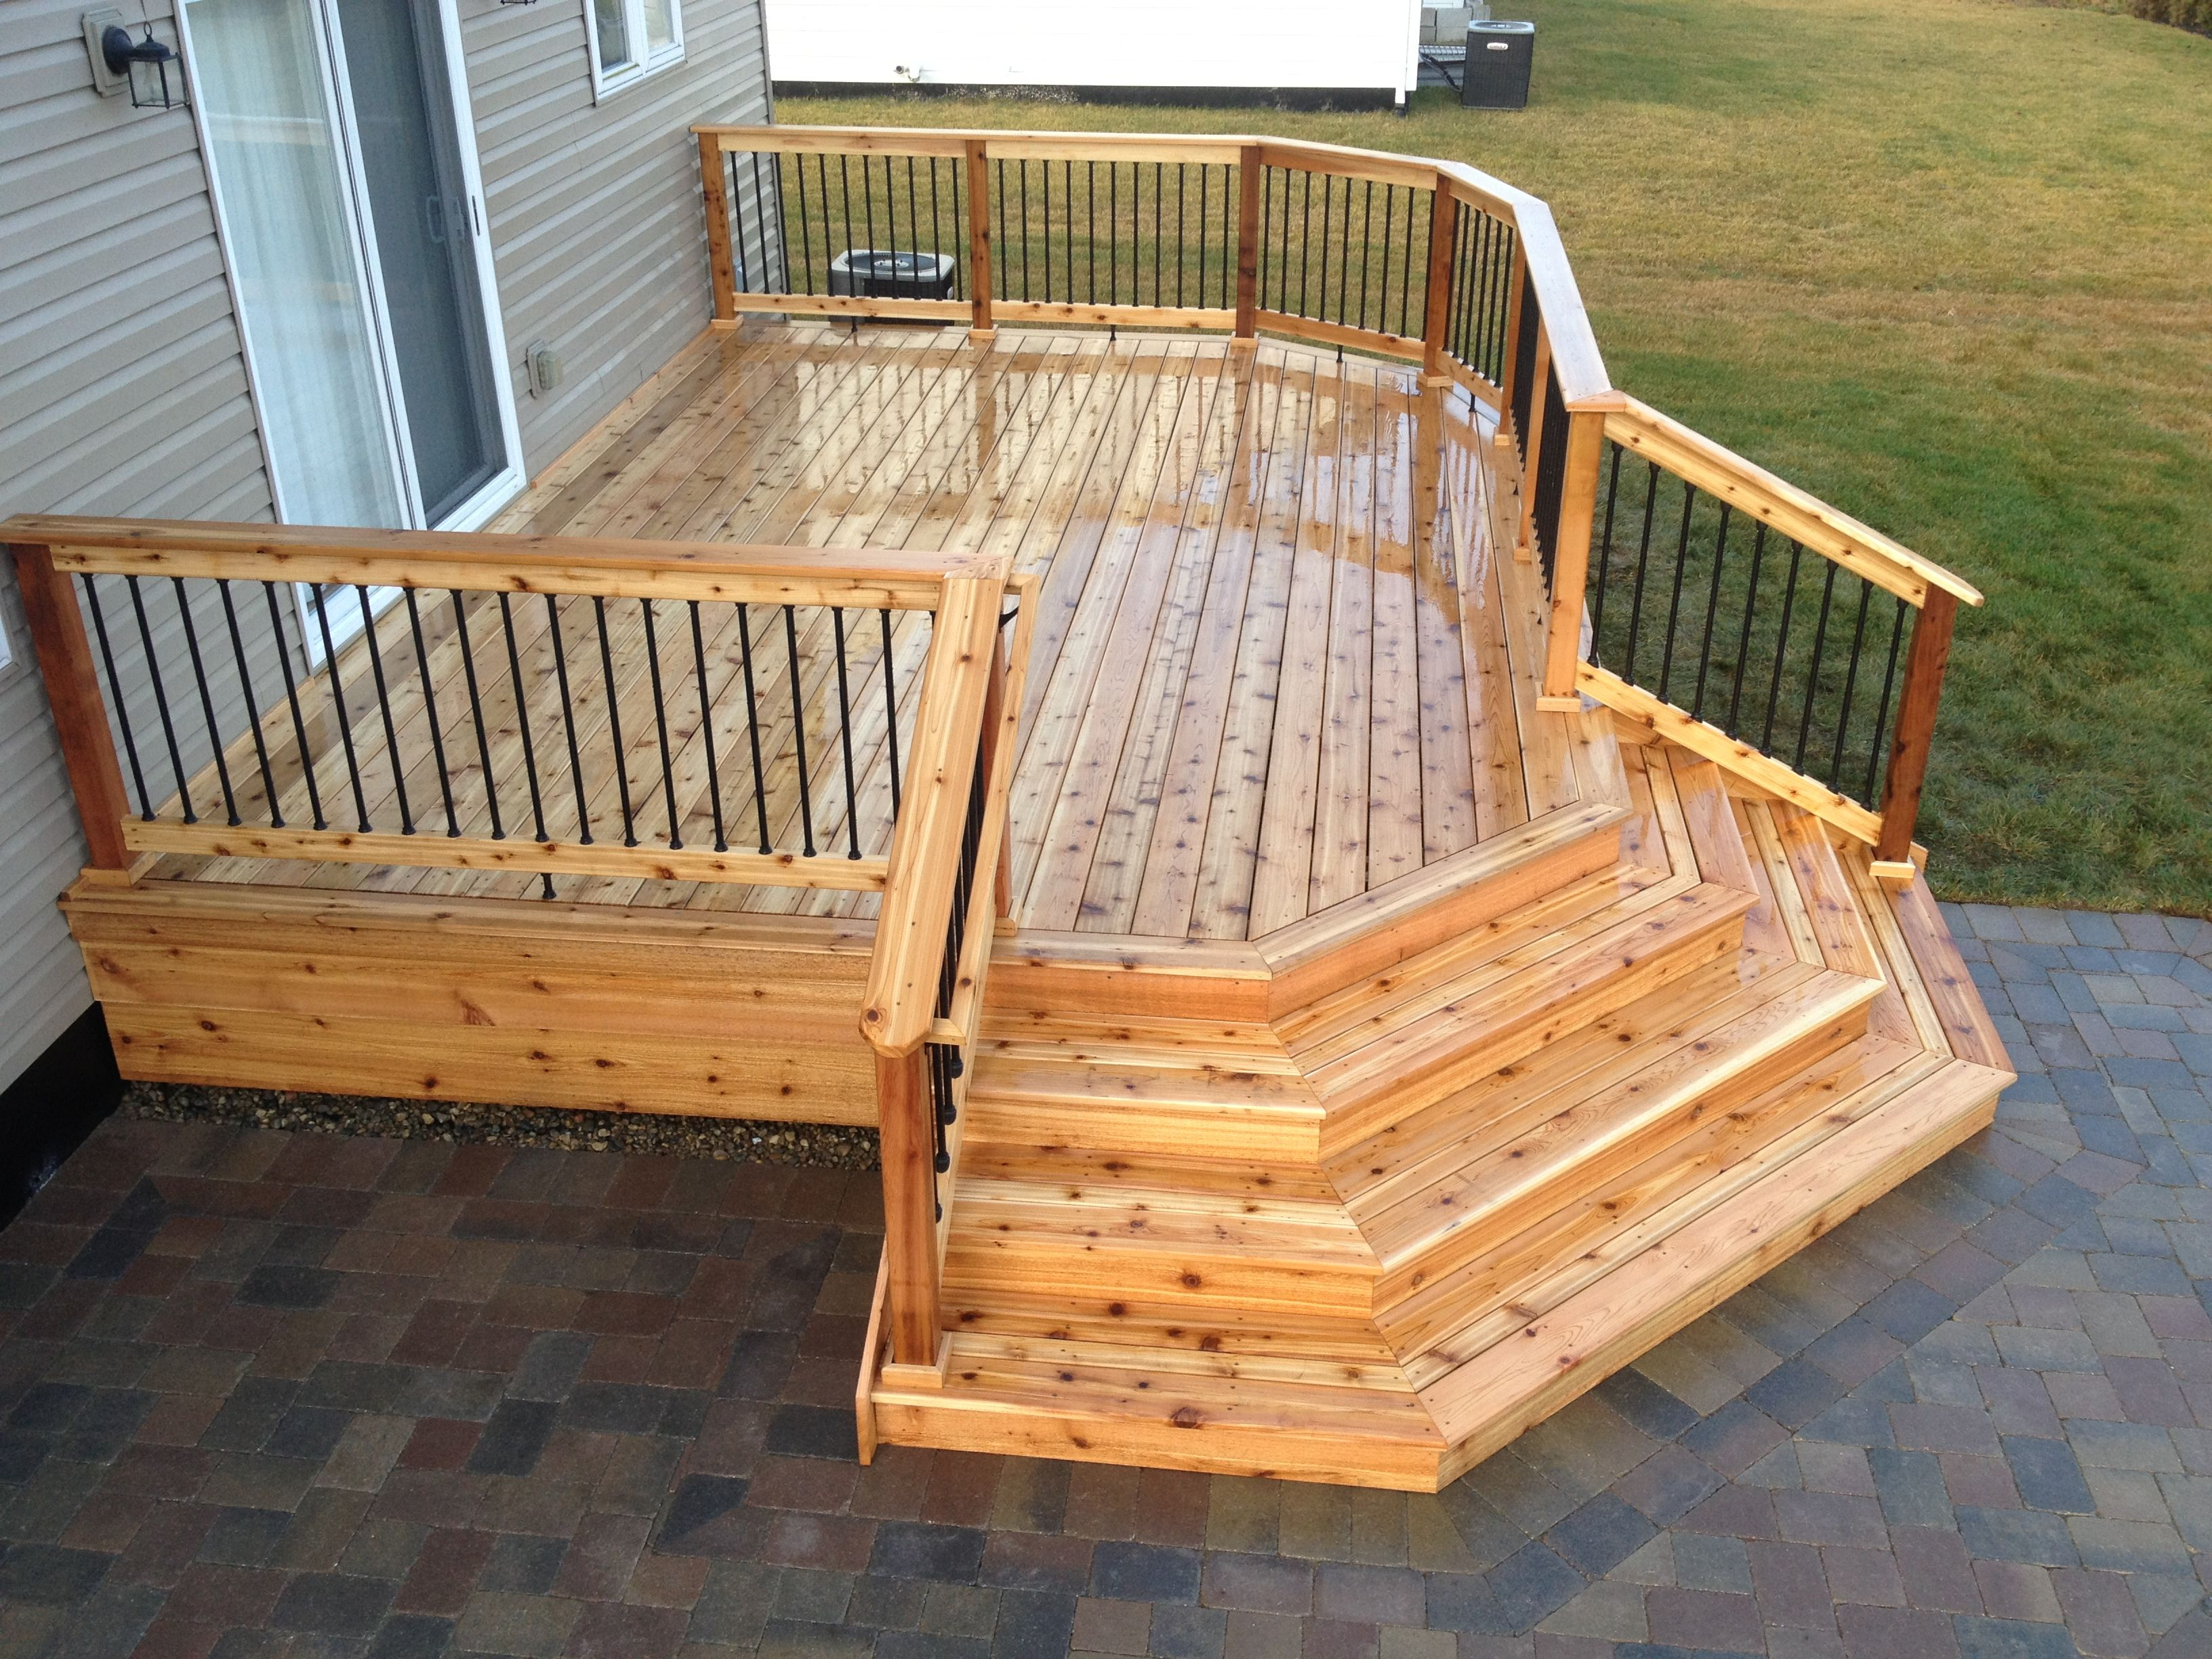 Deck Stairs Calculator | Build Deck Stairs | Deck Stair Stringers